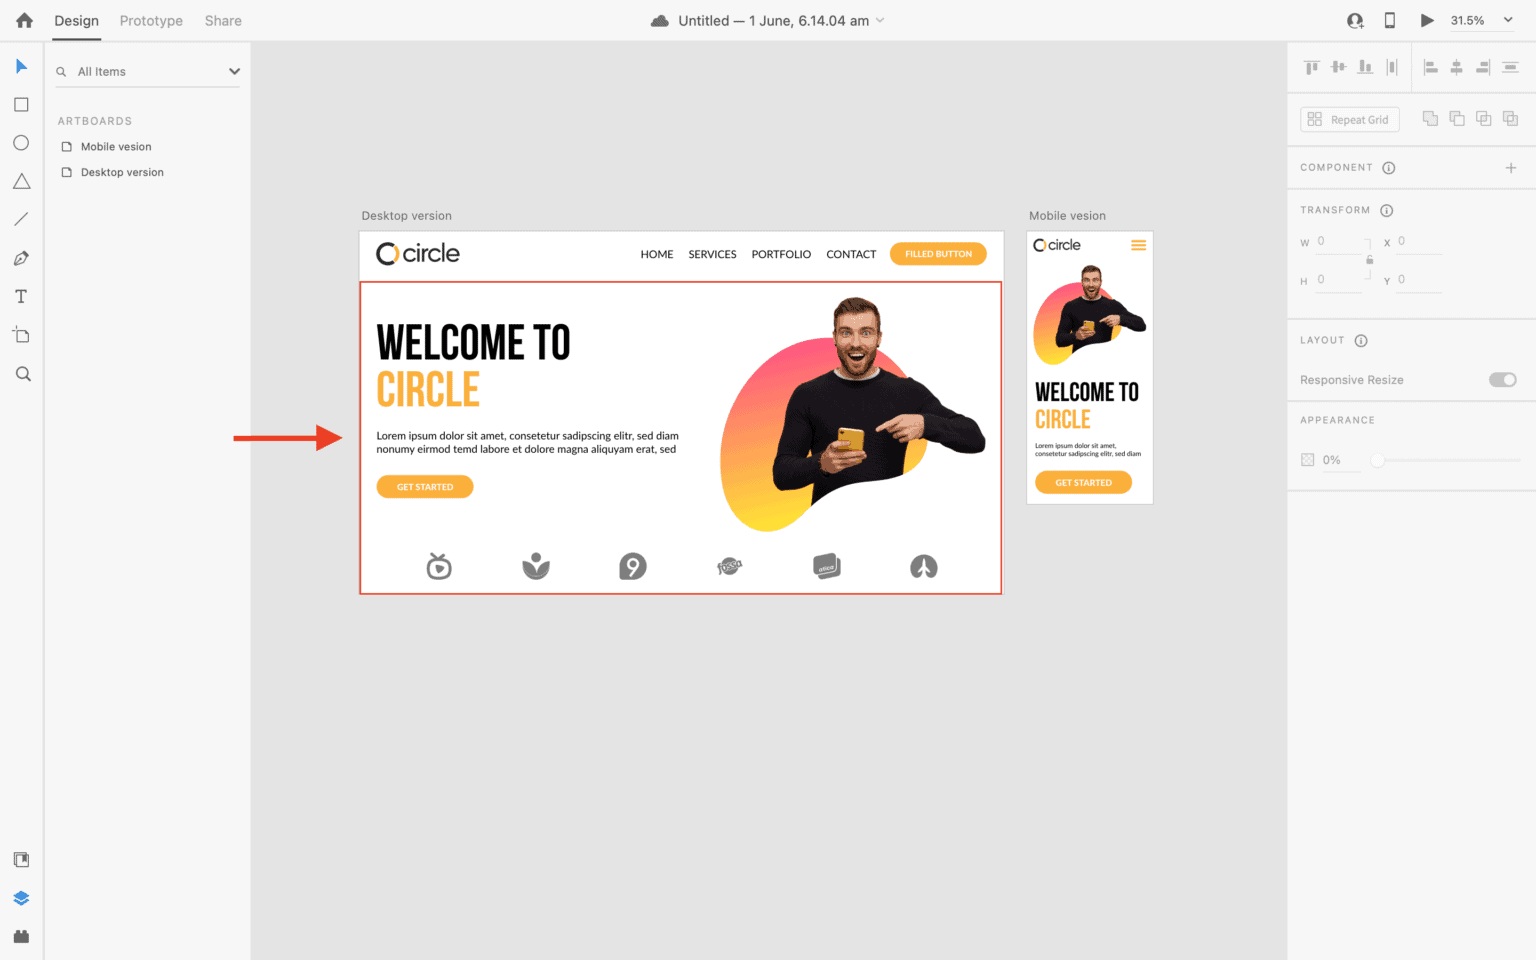 designing main sections in adobe XD